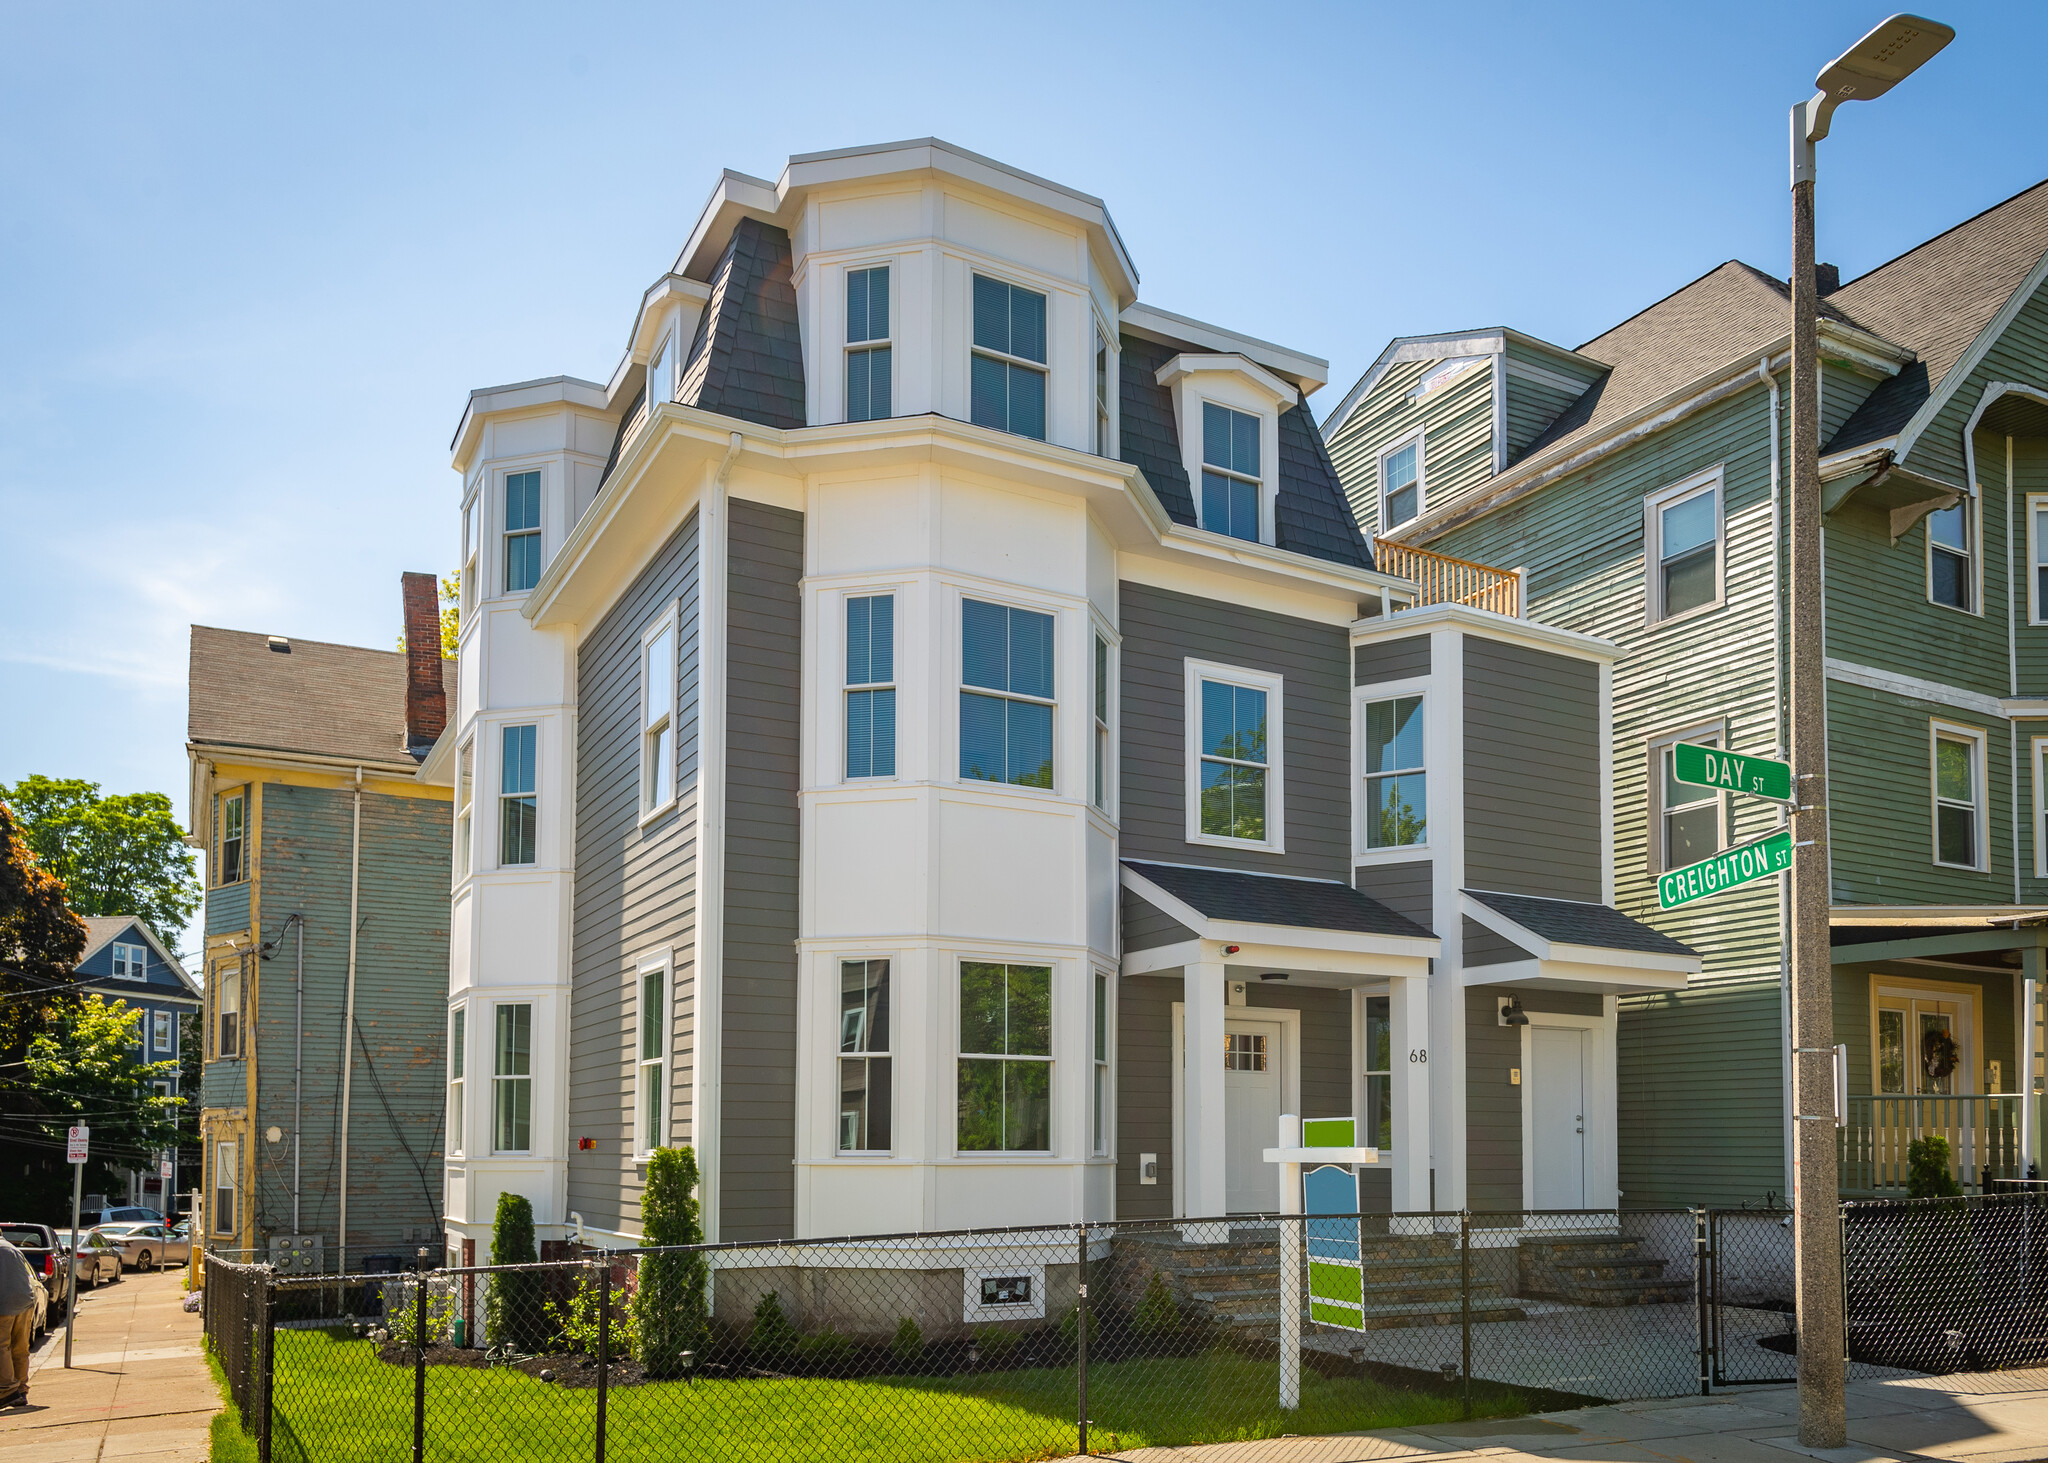 3 Beds, 2 Baths apartment in Boston, Jamaica Plain for $3,525